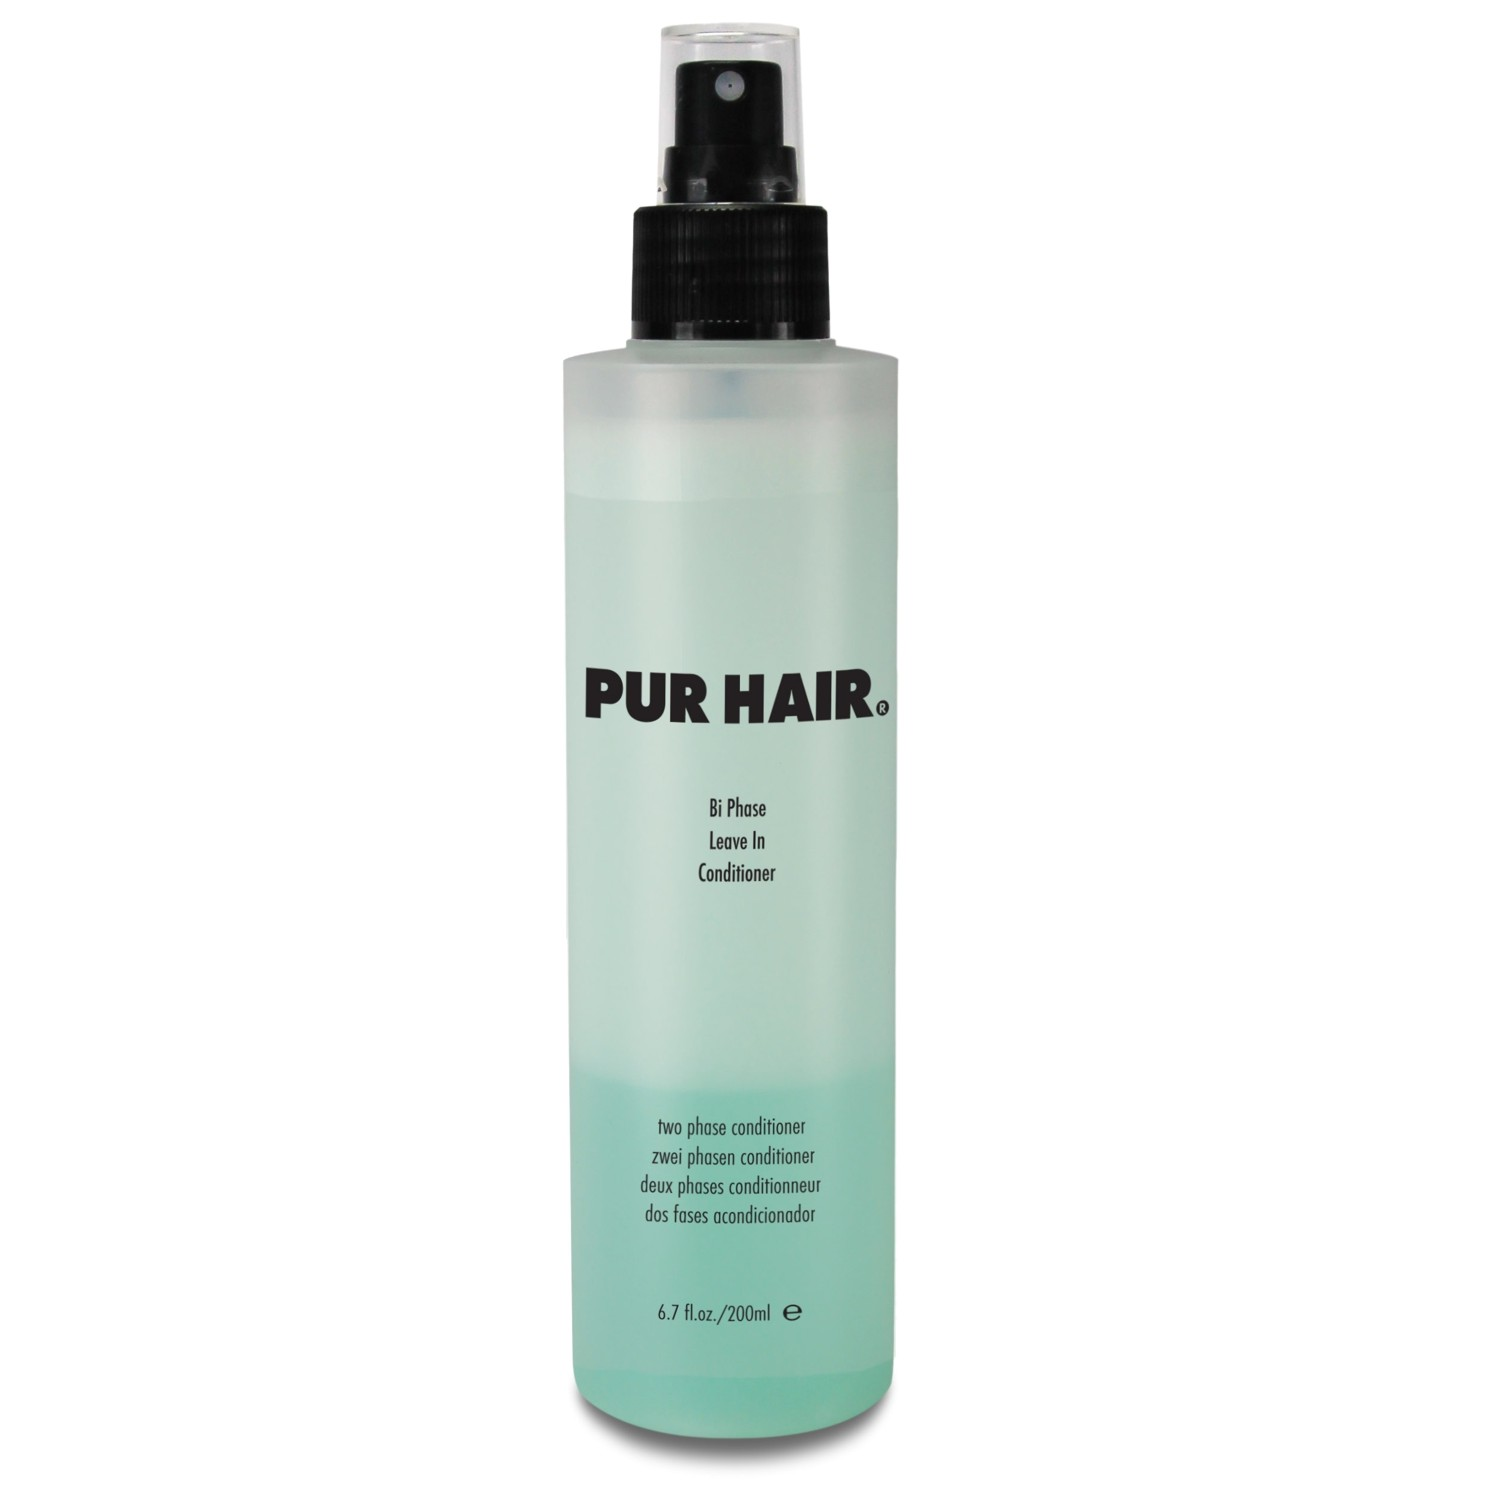 PUR HAIR Bi Phase Leave In Conditioner 200 ml